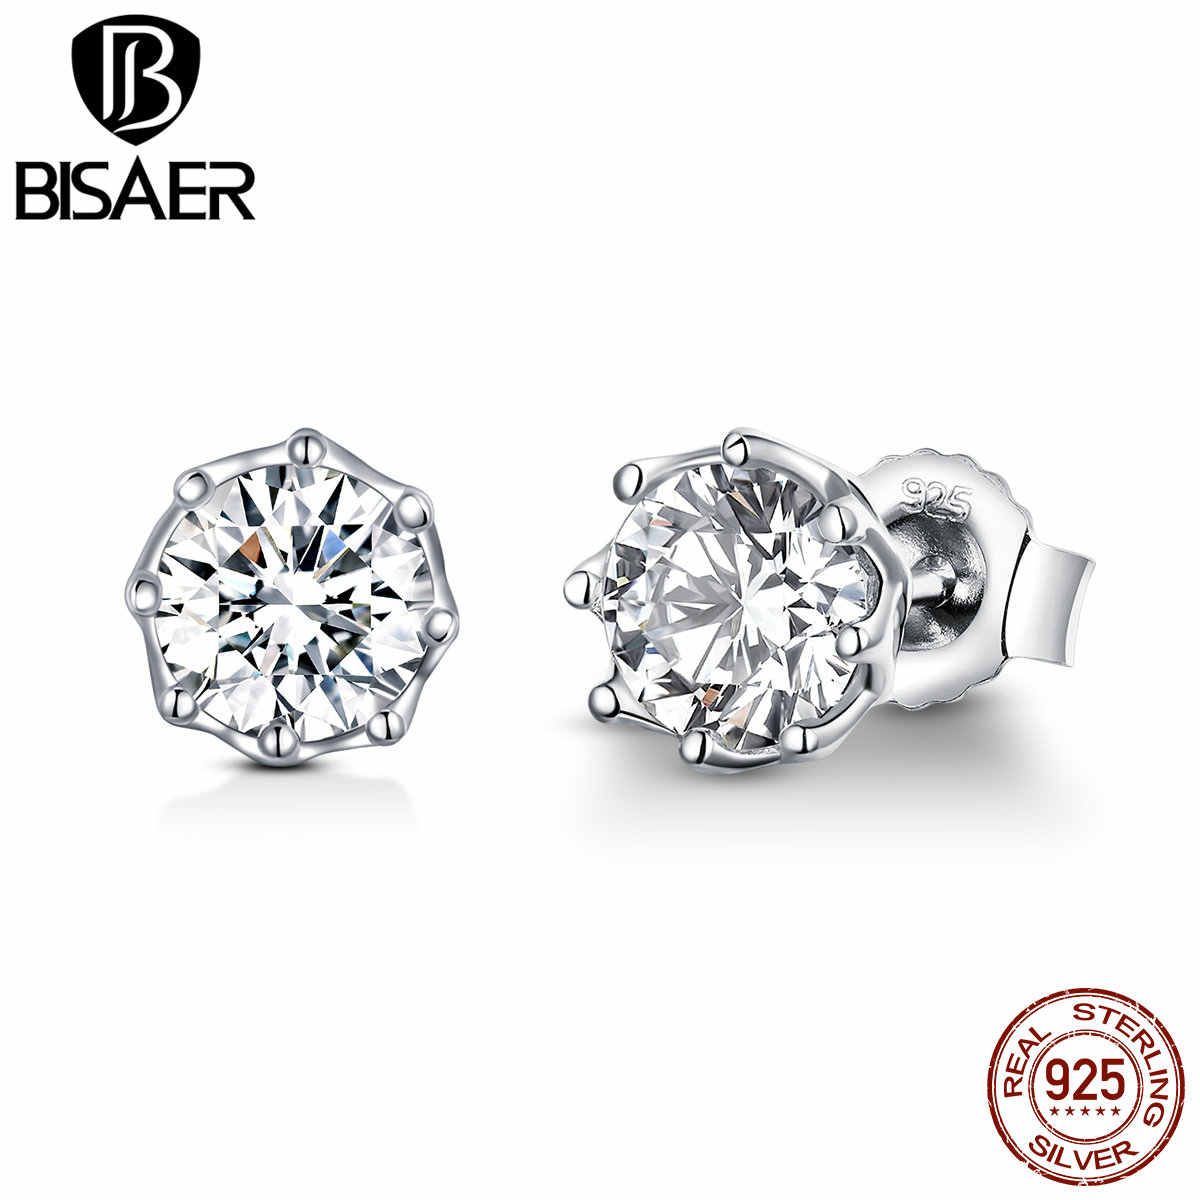 BISAER 925 Sterling Silver Crystal Simple Small Stud Earrings for Women Cubic Zirconia Fashion Earrings Jewelry Brincos ECE499